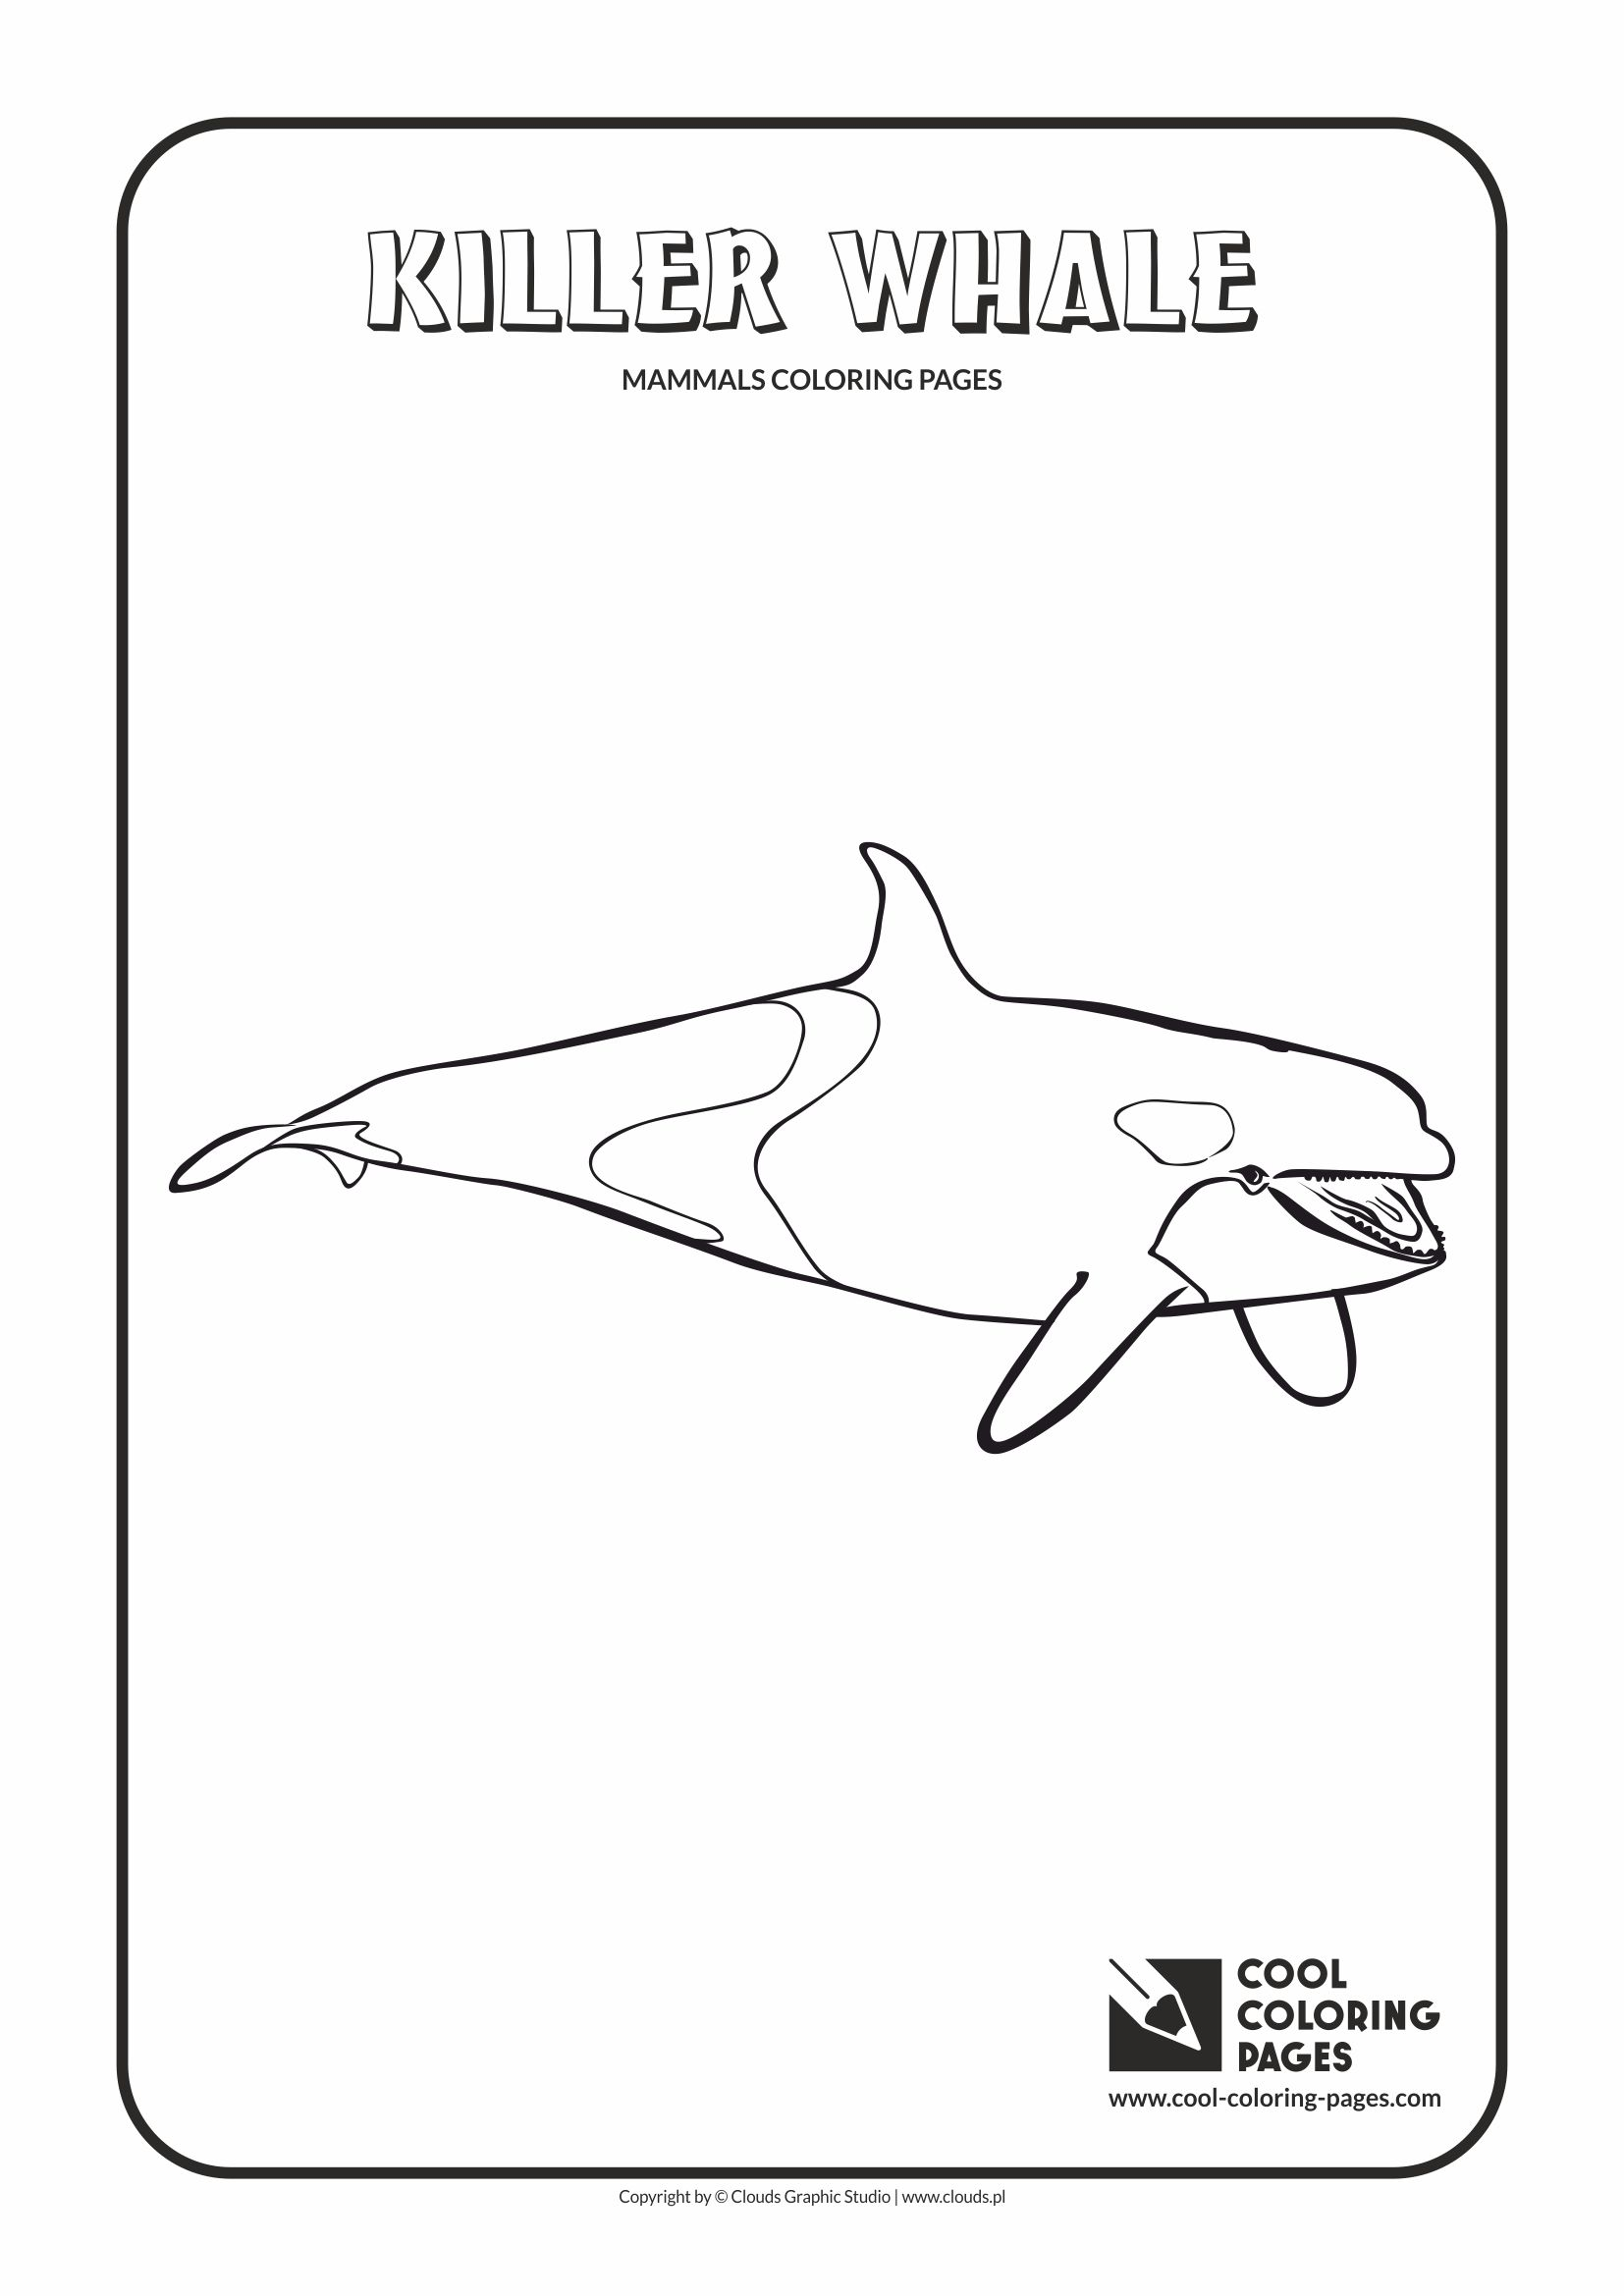 Cool Coloring Pages - Animals / Killer whale orca / Coloring page with killer whale orca